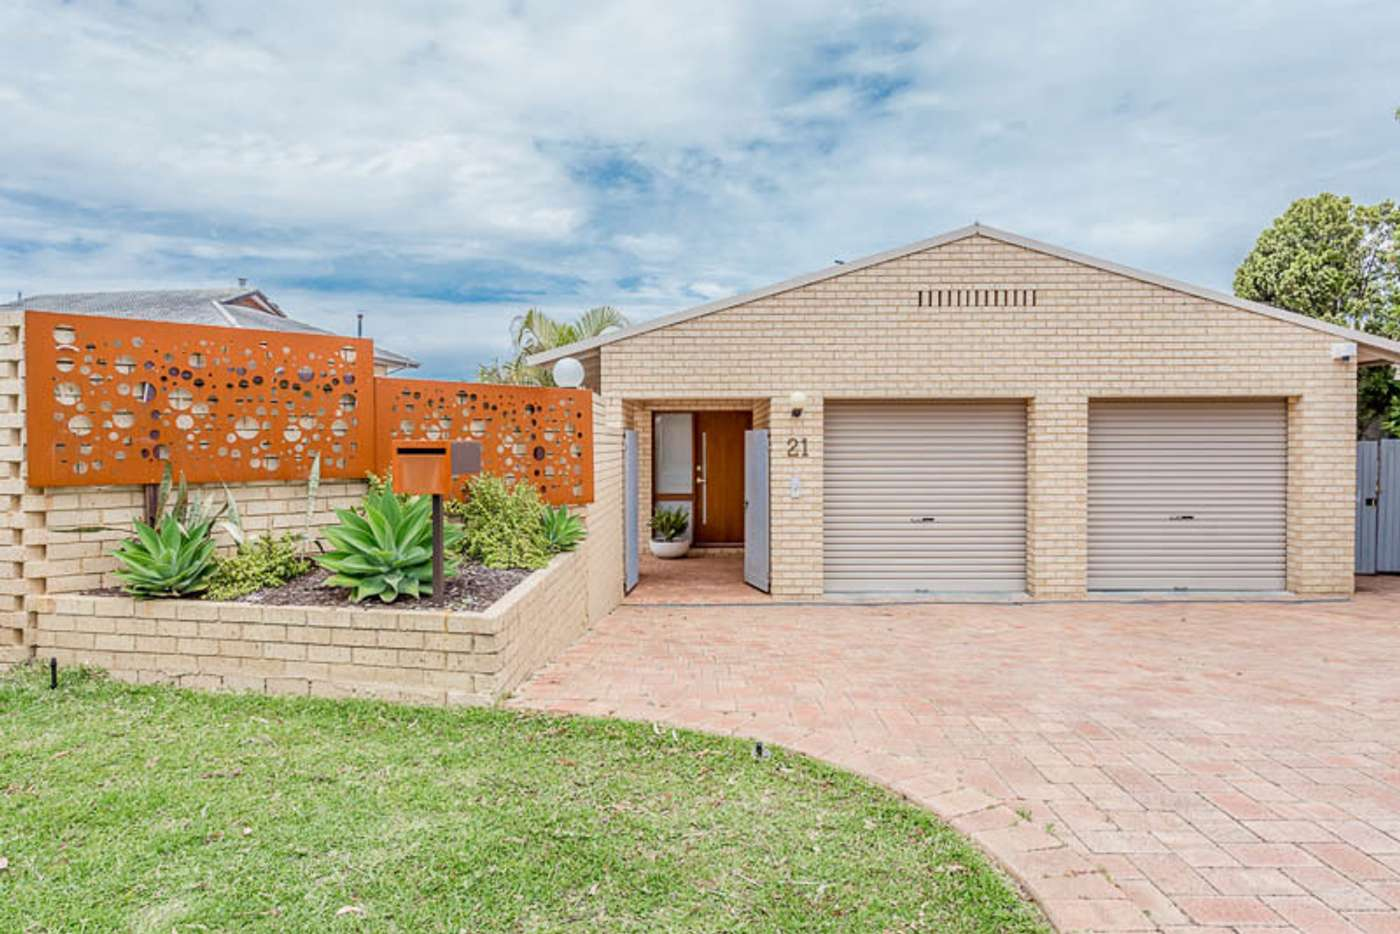 Main view of Homely house listing, 21 Unwin Crescent, Salter Point WA 6152